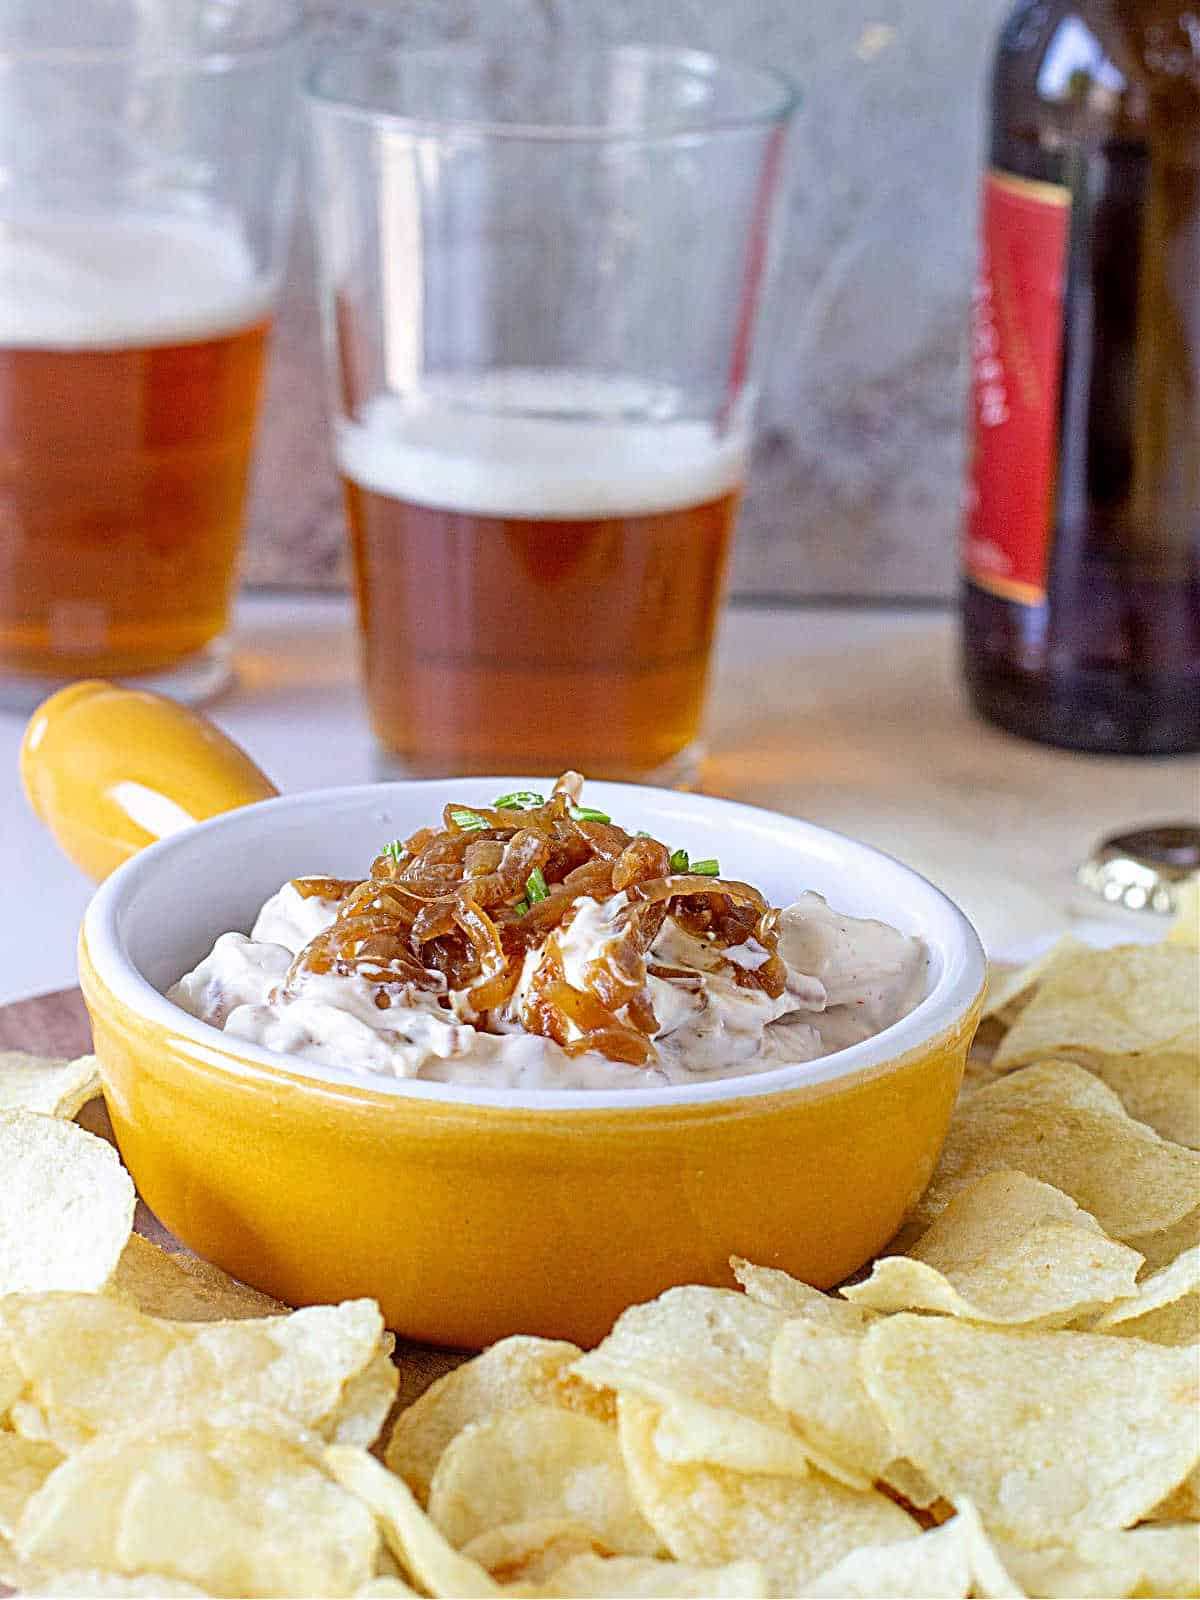 Caramelized Onion Dip in yellow ramekin surrounded by potato chips and beer